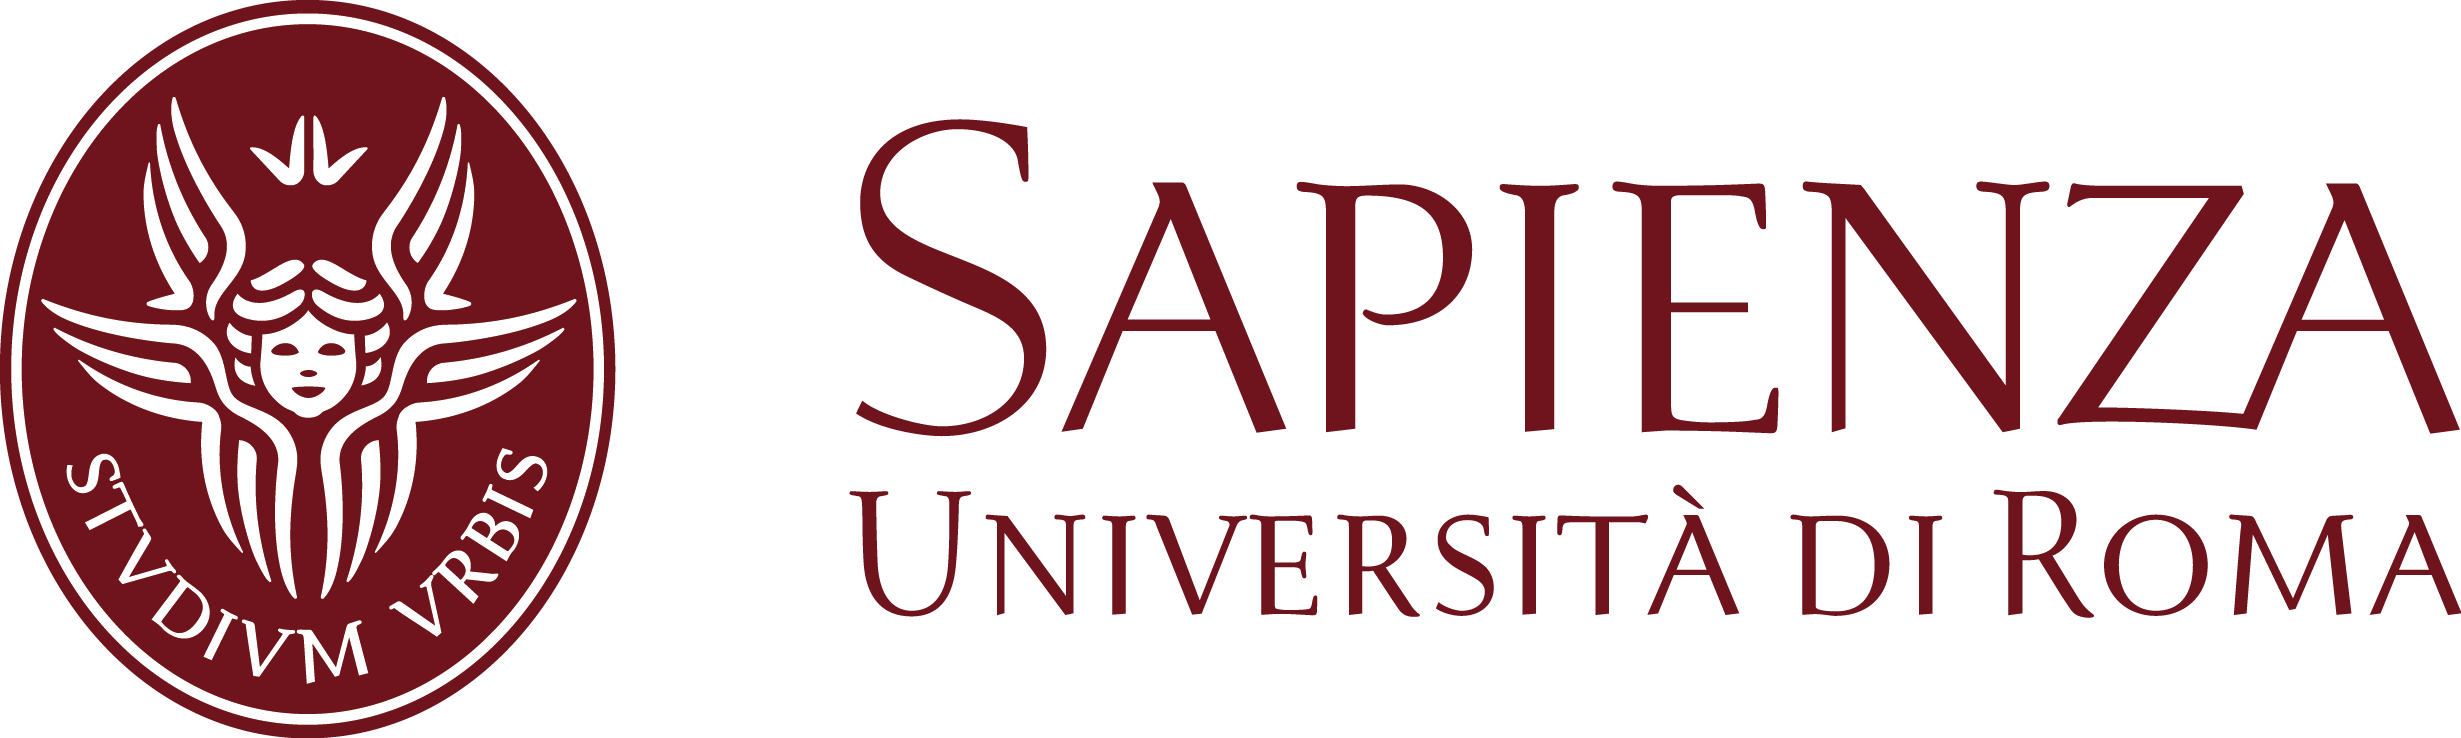 https://www.exaltech.it/wp-content/uploads/2019/11/Sapienza-Logo-vettoriale.png